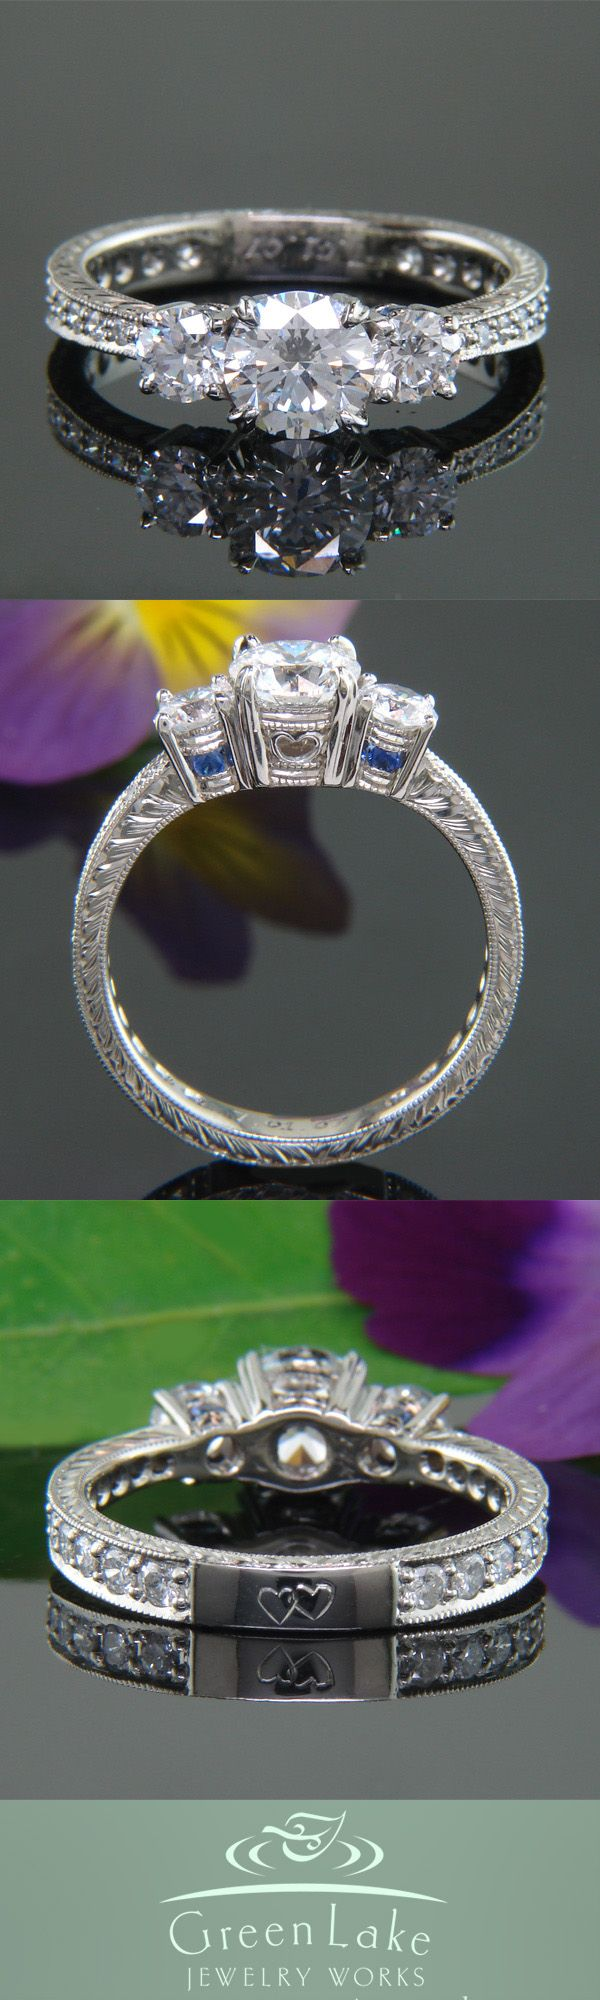 Three-stone engagement ring with engraving and accent sapphires.....minus the sapphires